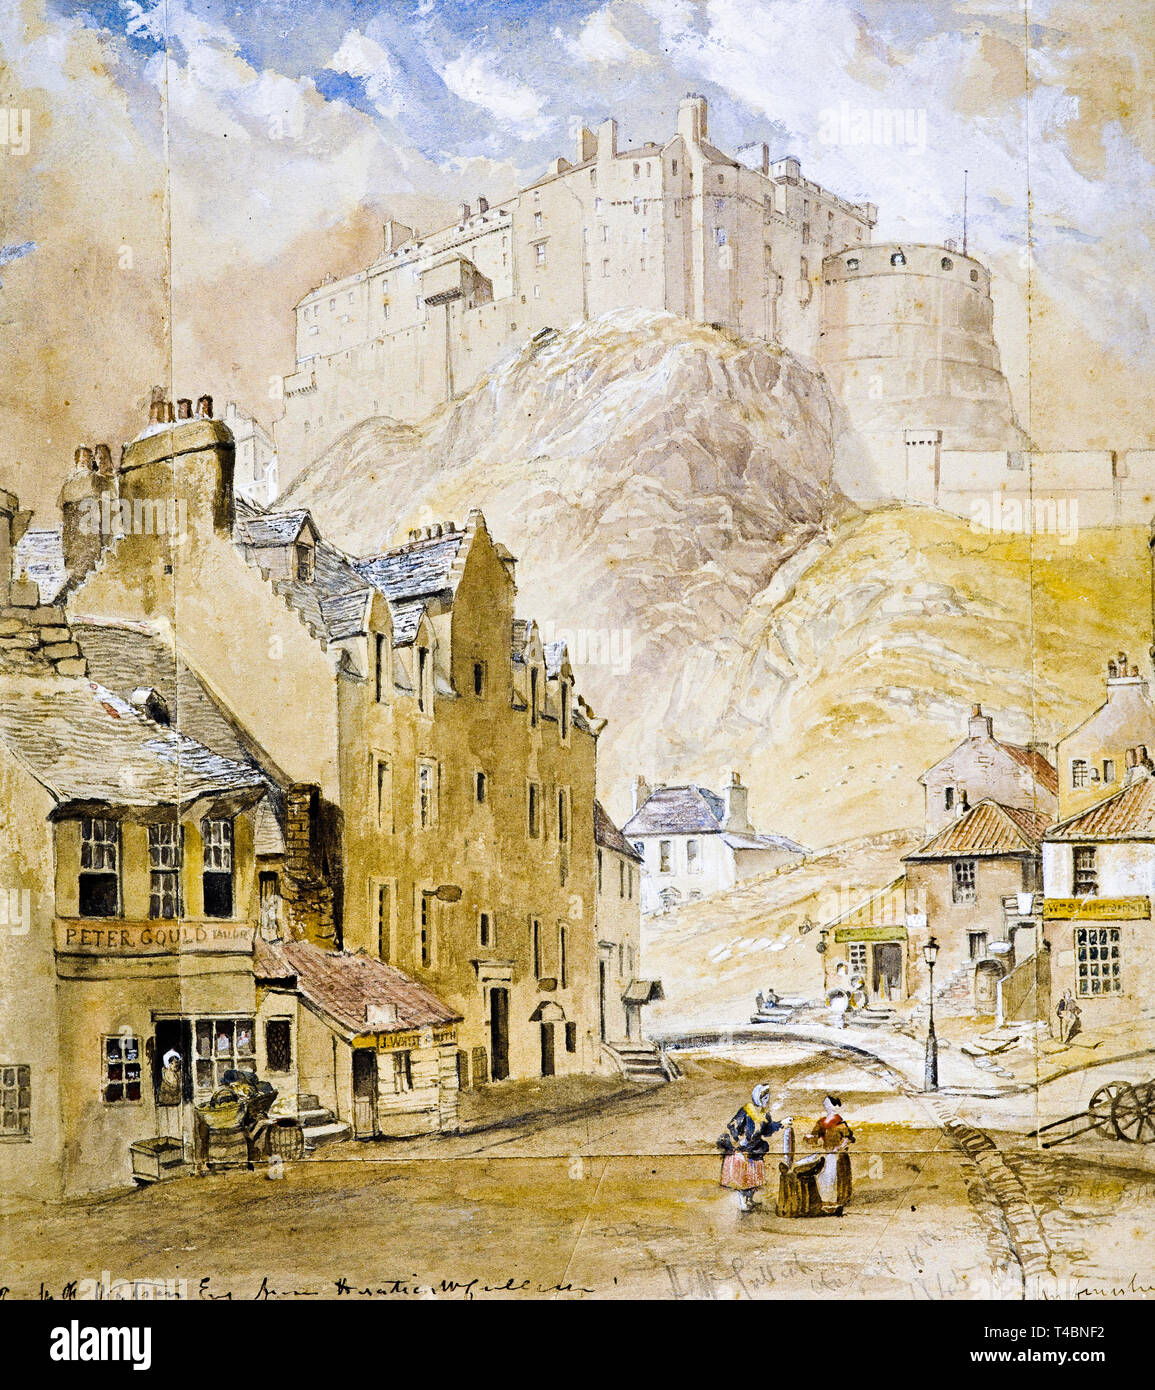 Horatio McCulloch, Edinburgh Castle from the Foot of the Vennel, 1845 Stock Photo